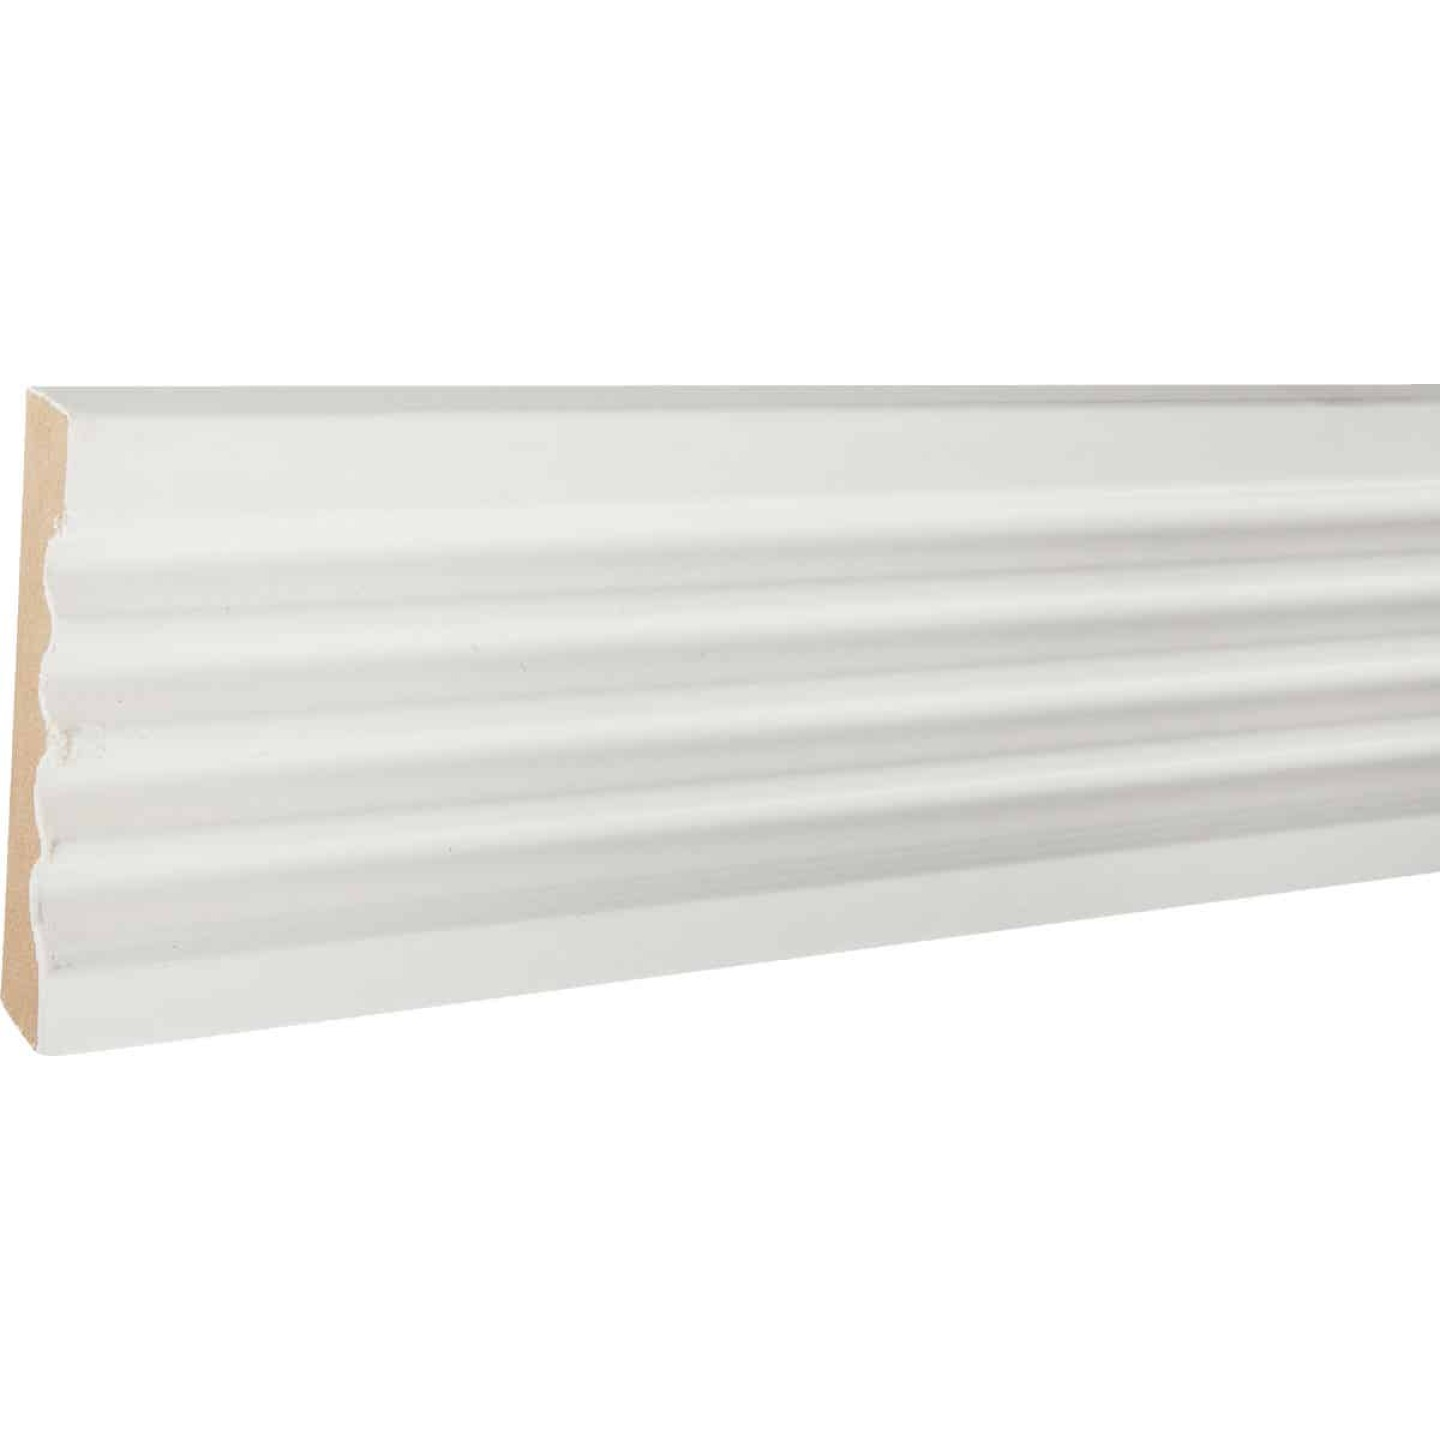 House of Fara 3/4 In. W. x 3 In. H. x 8 Ft. L. White MDF Fluted Casing Molding Image 2